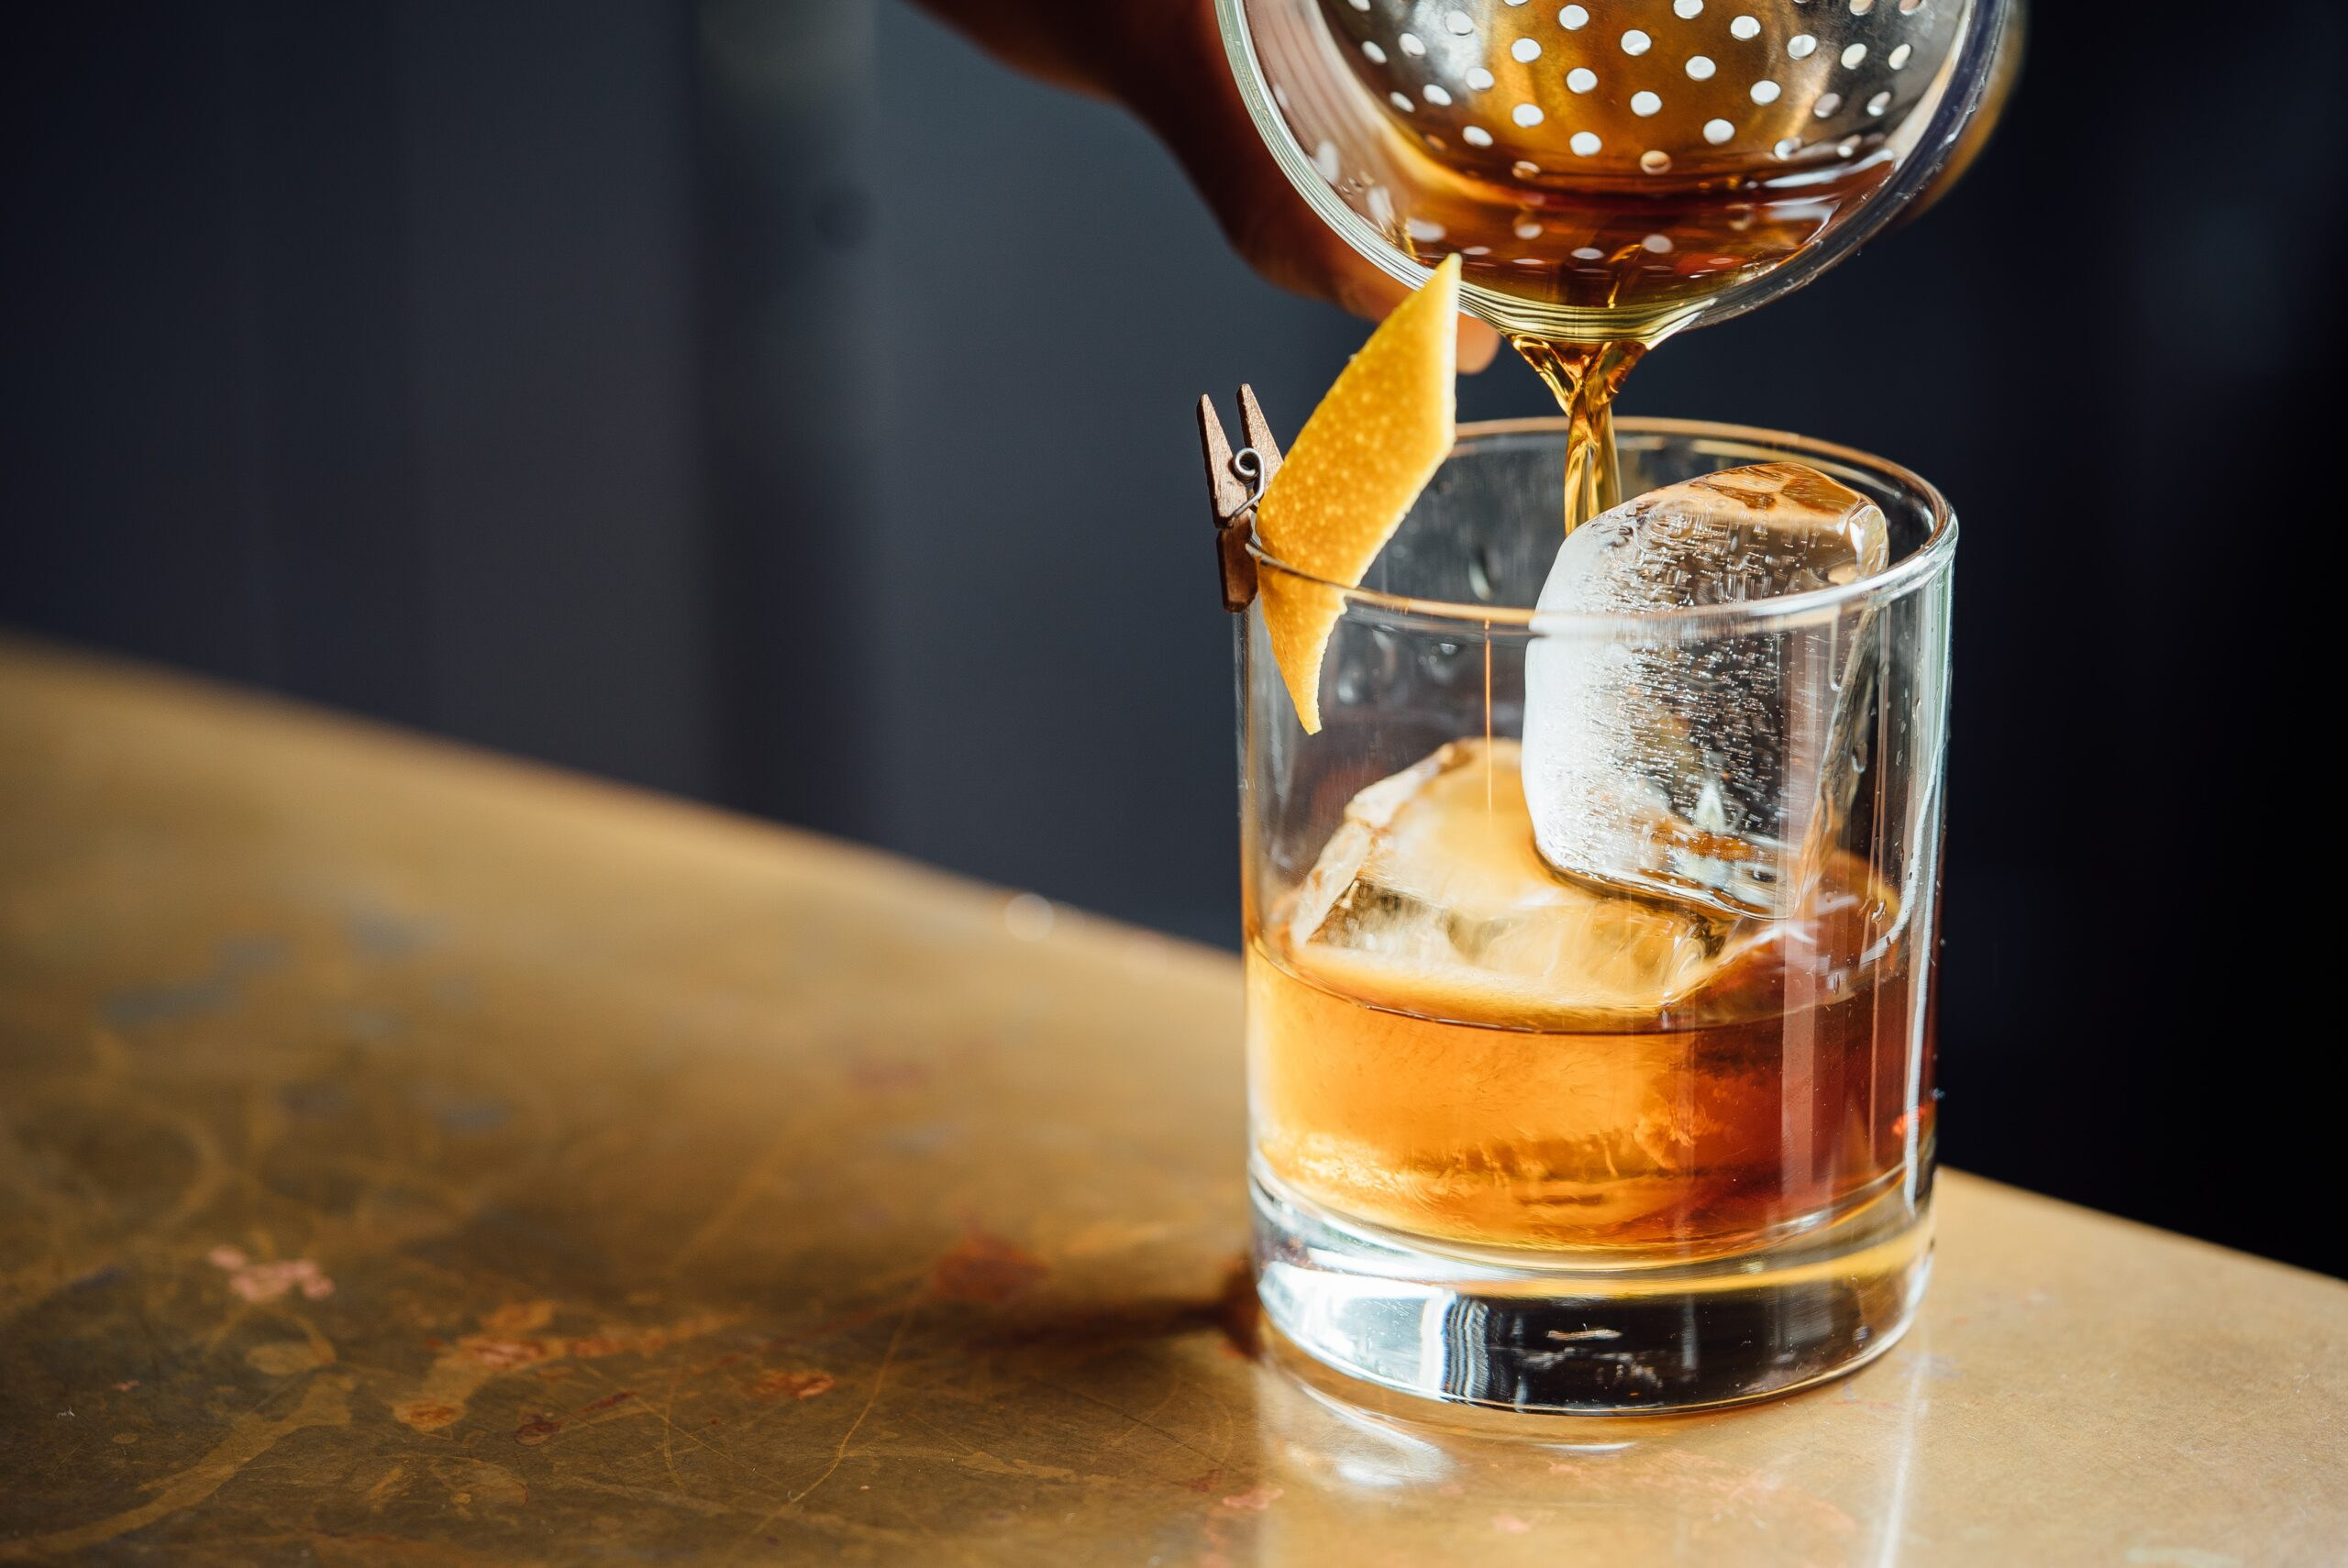 Get Your Belly Ready For Dinner With Our CBD Boulevardier